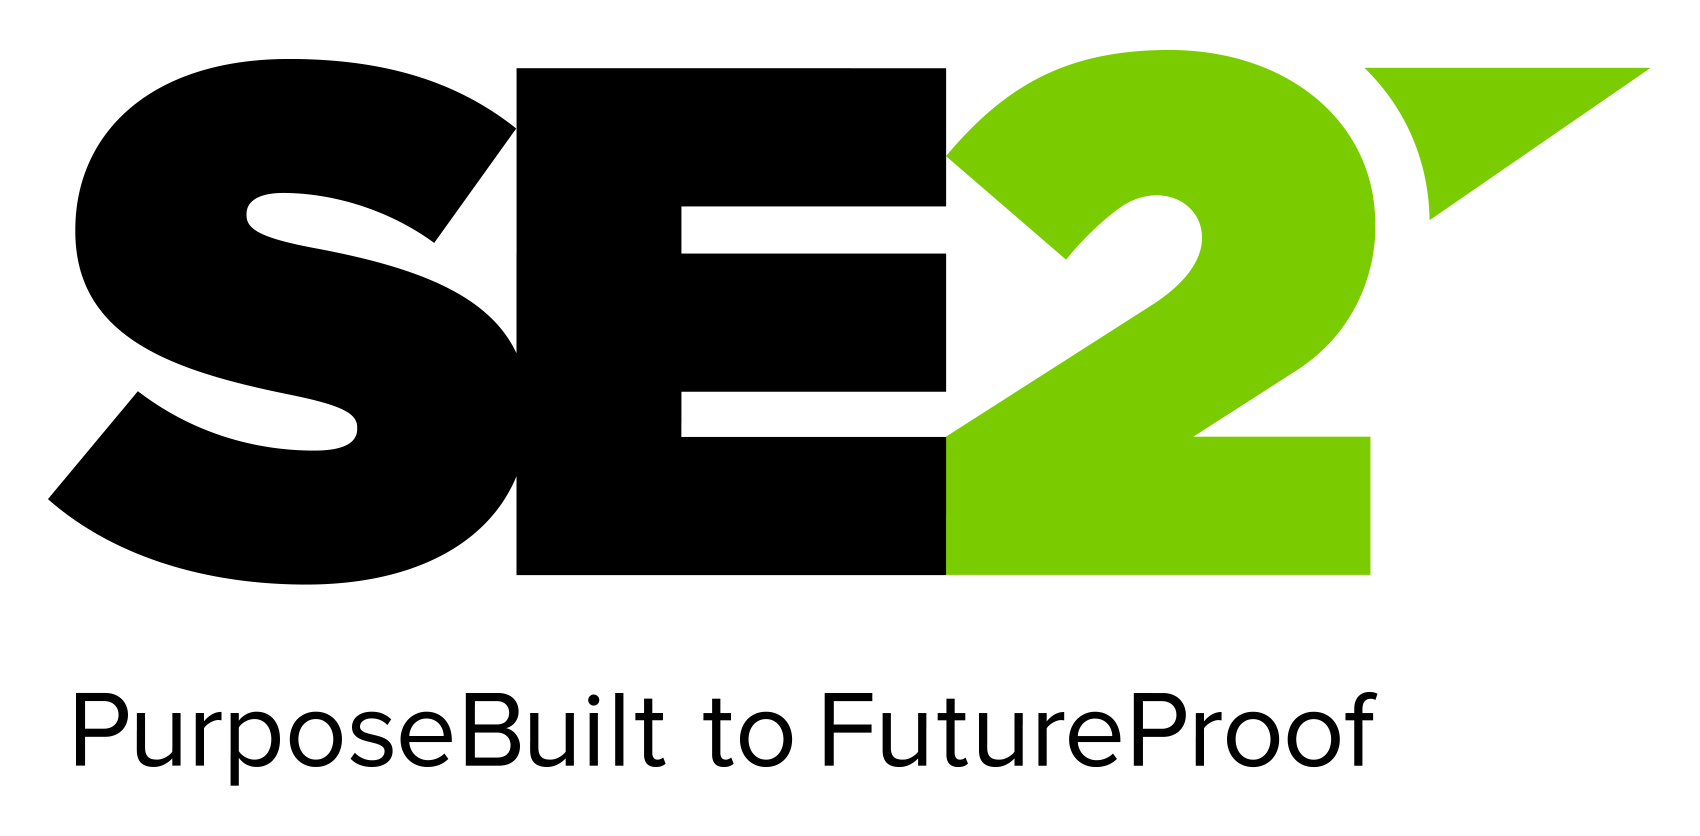 SE2: PurposeBuilt to FutureProof